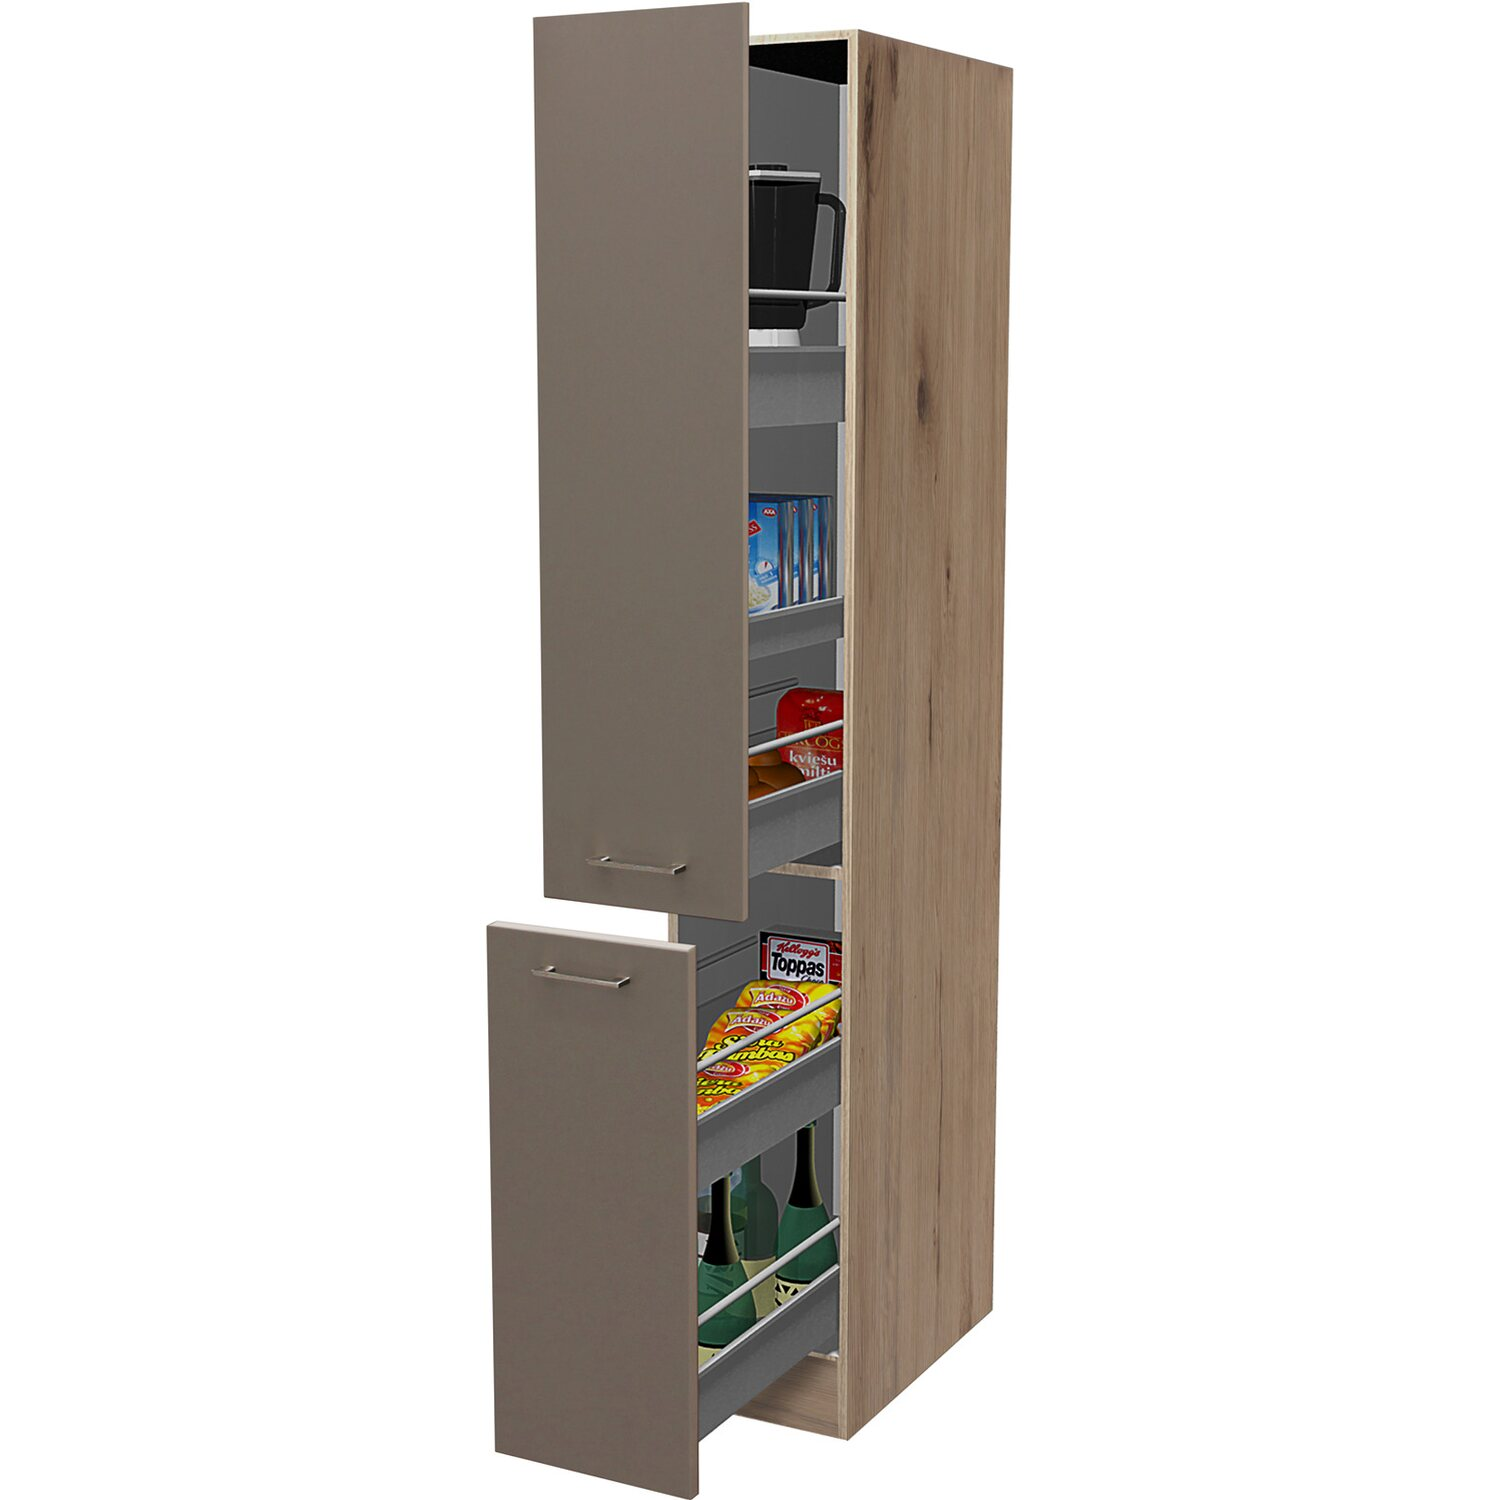 flex well apothekerschrank 30 cm arizona quarz cubanit san remo eiche kaufen bei obi. Black Bedroom Furniture Sets. Home Design Ideas